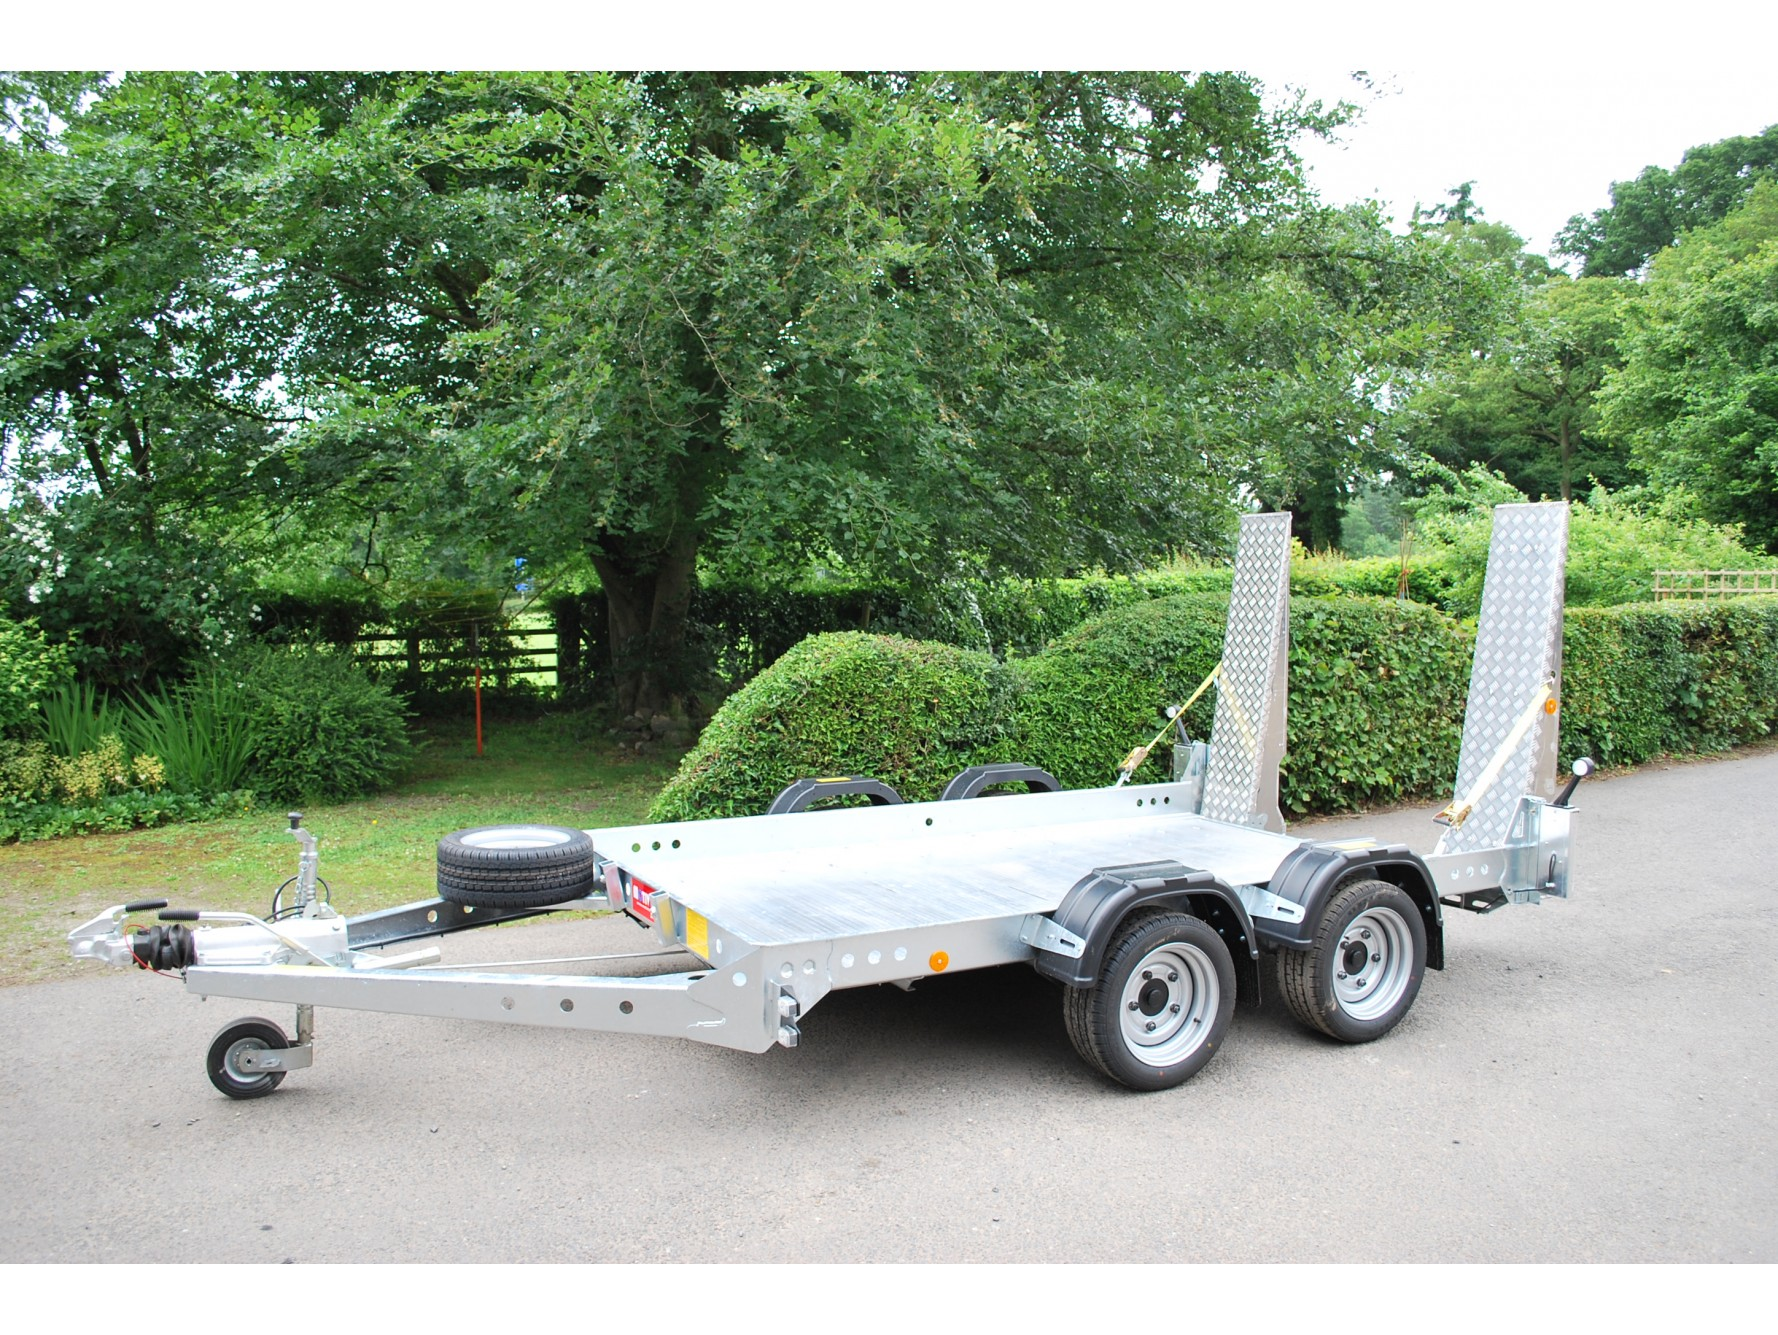 TC3000 30 Access Platform Trailer (Nifty Lift HR12 Snorkel SRT2770 S2770RT)